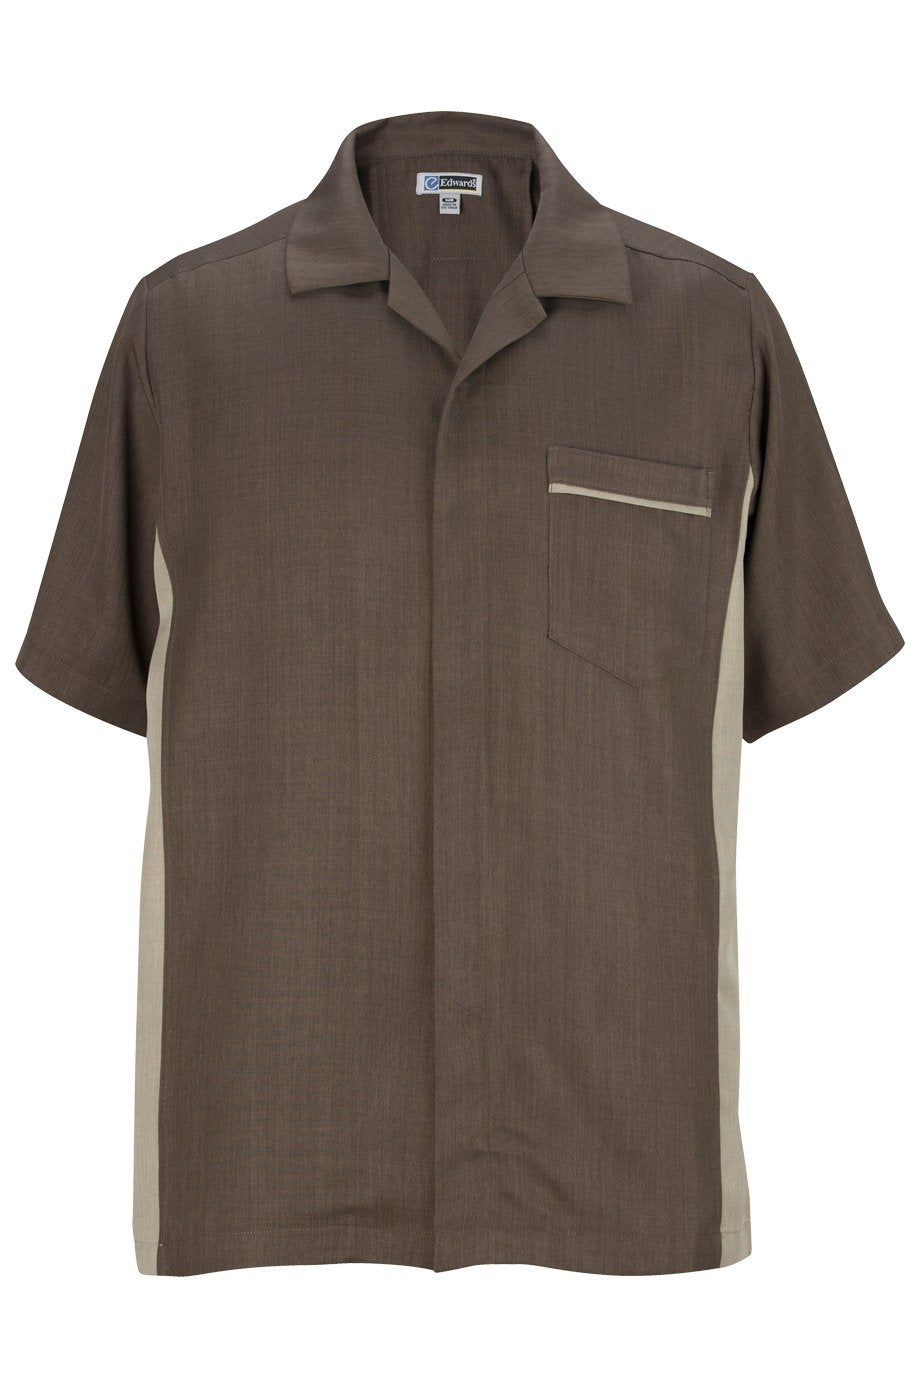 edwards-garment-mens-service-shirts-tunics